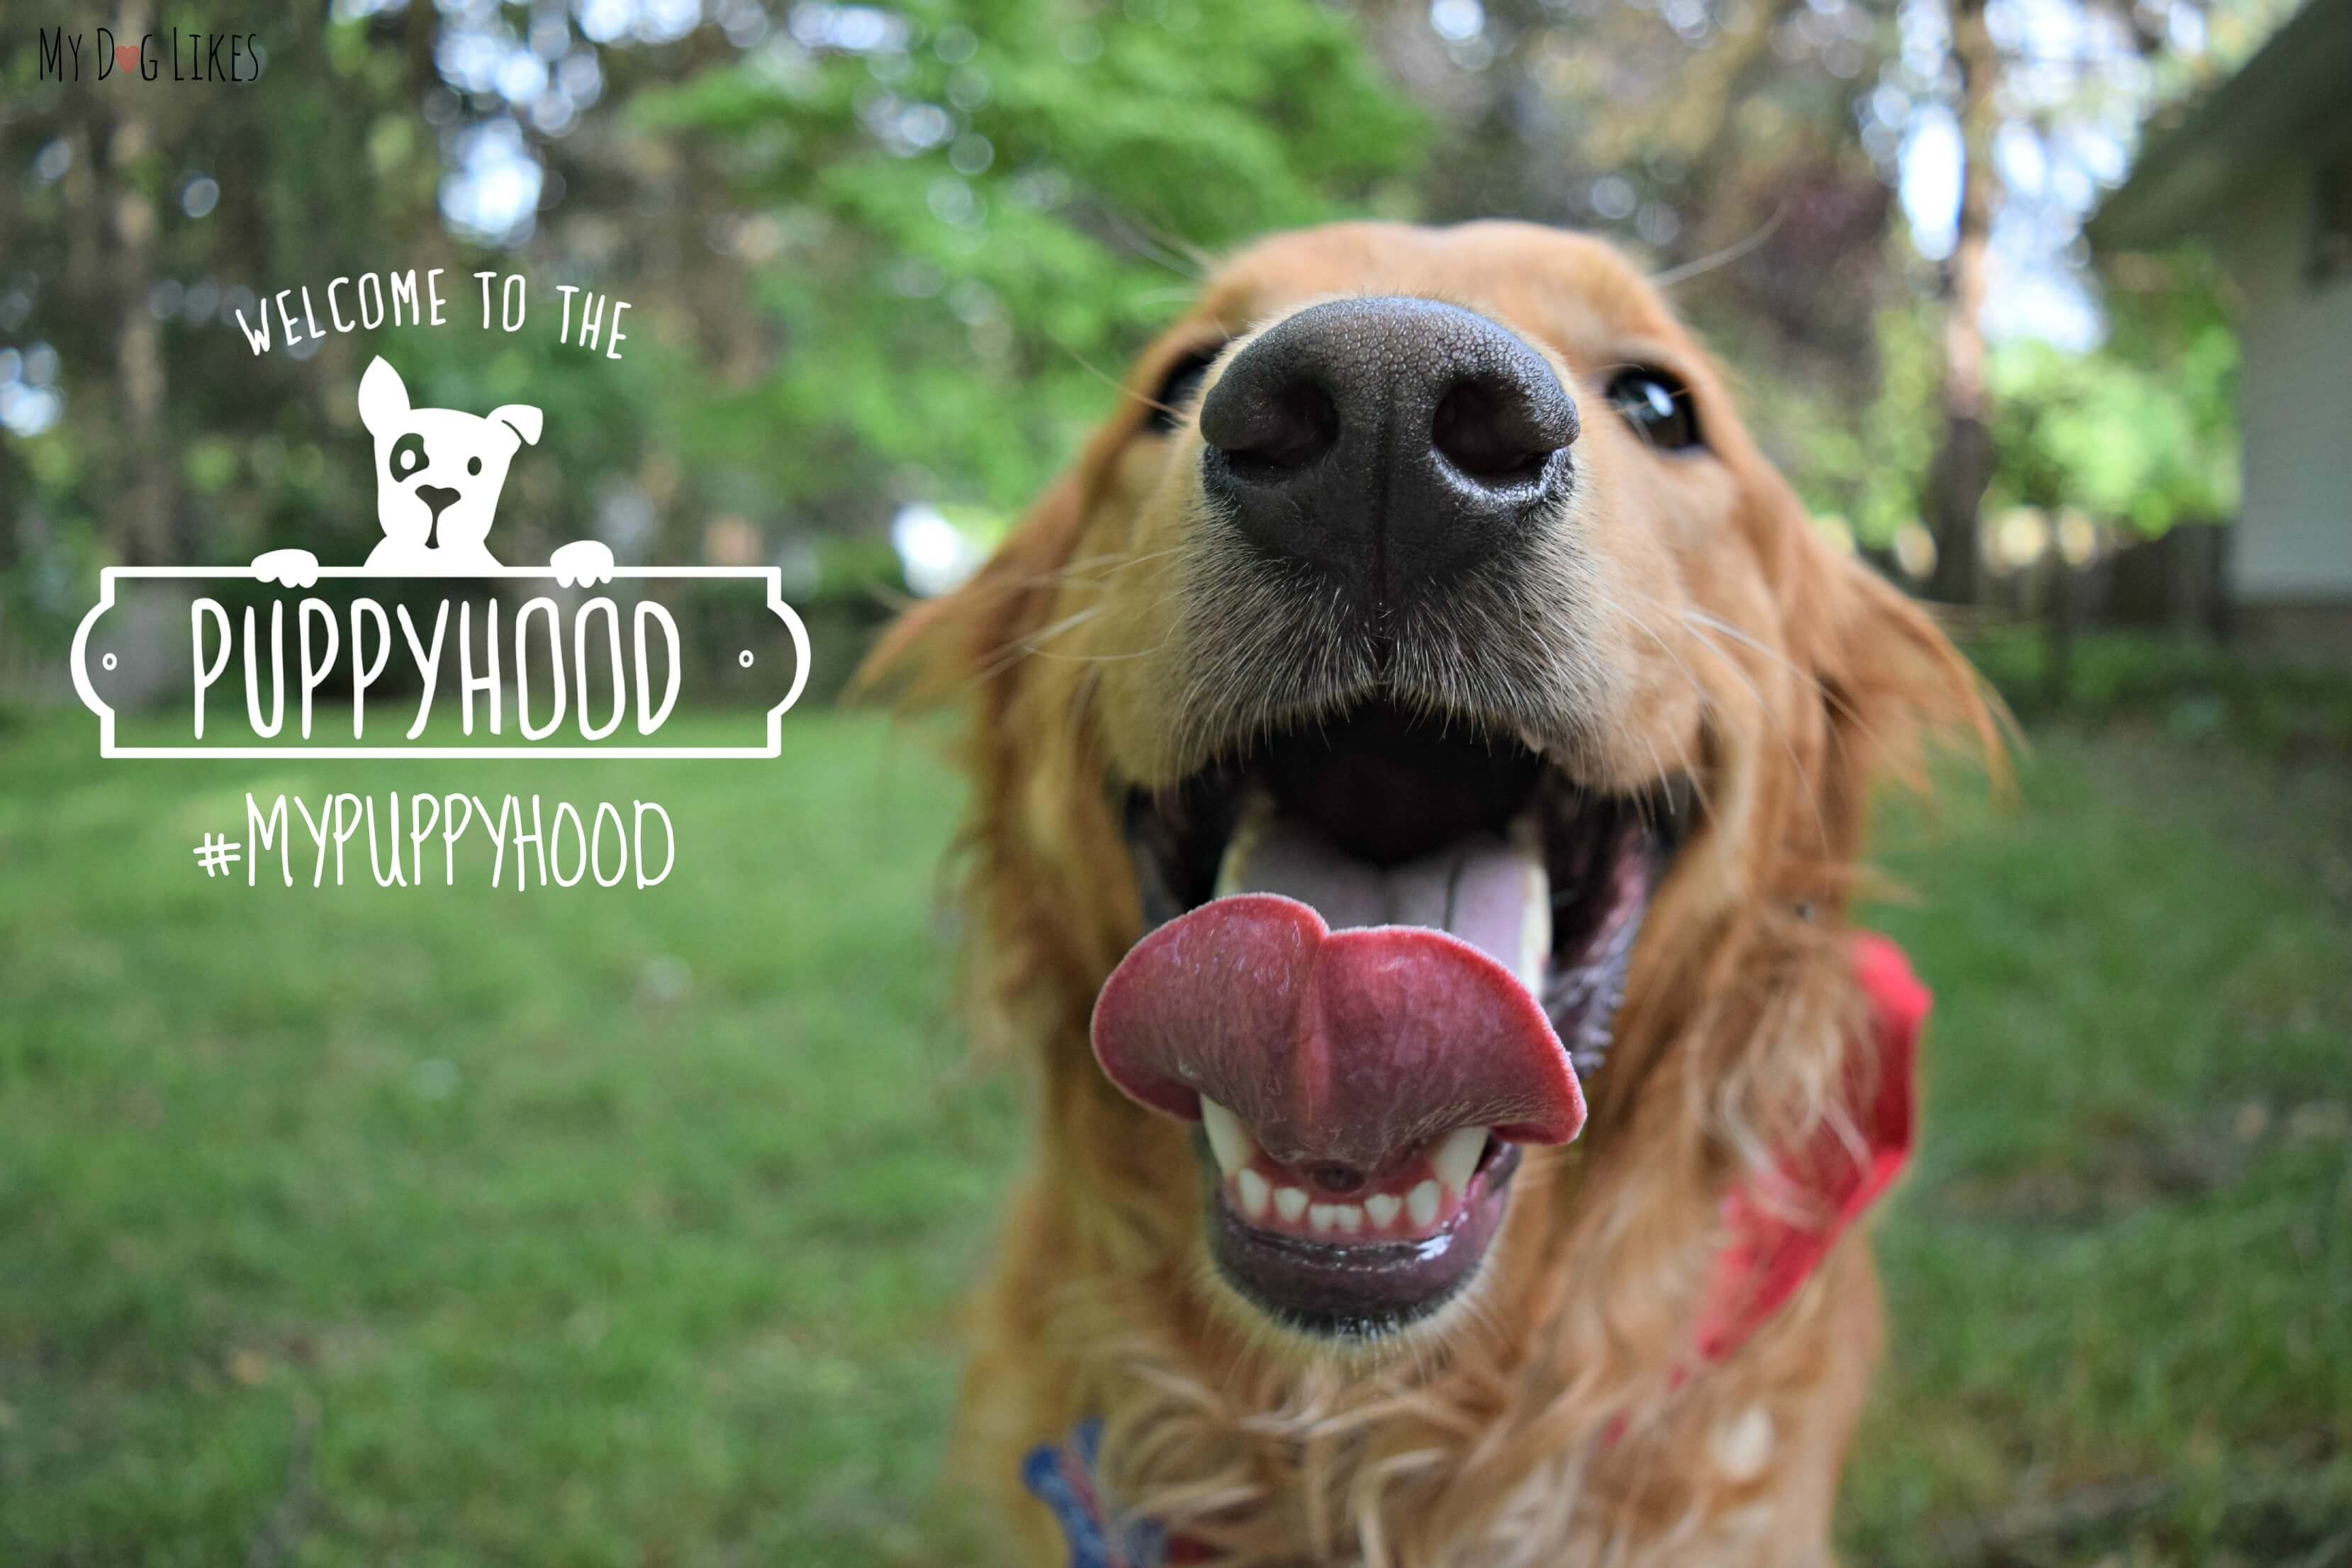 Its All Good In MyPuppyHood - 26 dogs puppyhood photos